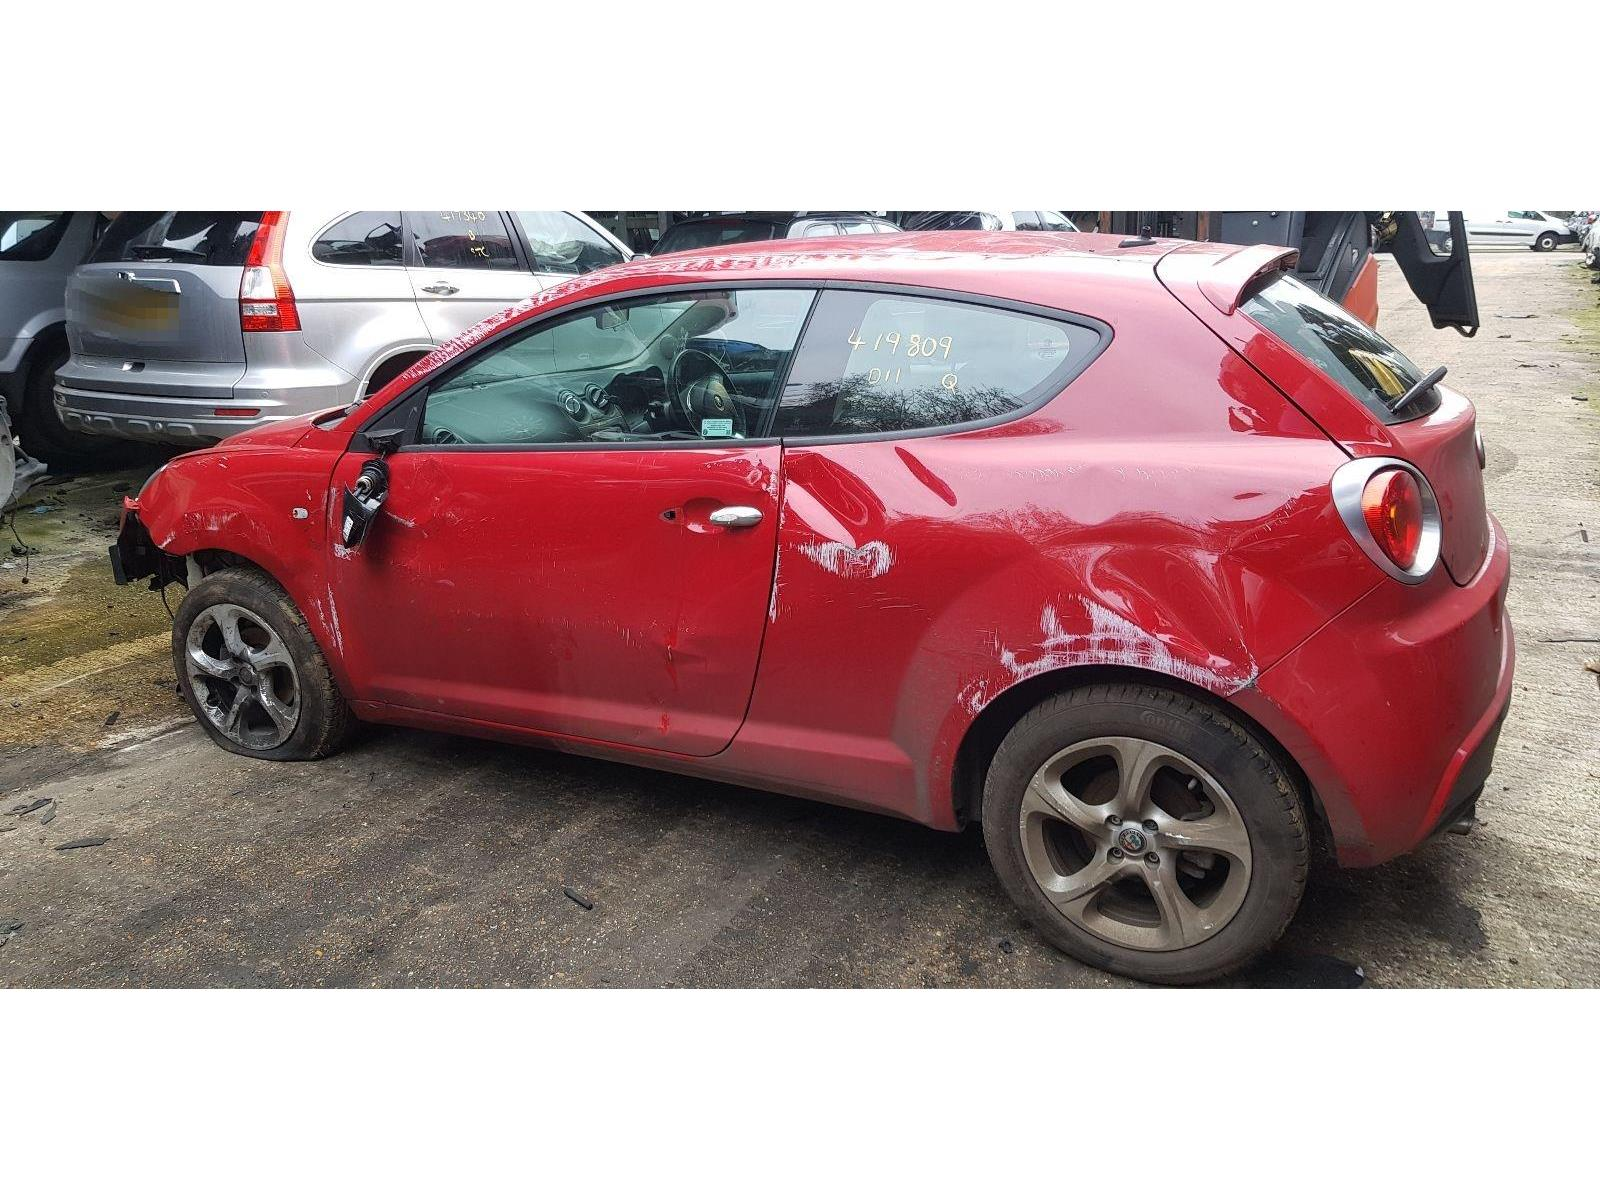 hight resolution of alfa romeo mito 2016 on tb twinair 3 door hatchback scrap salvage car for sale auction silverlake autoparts